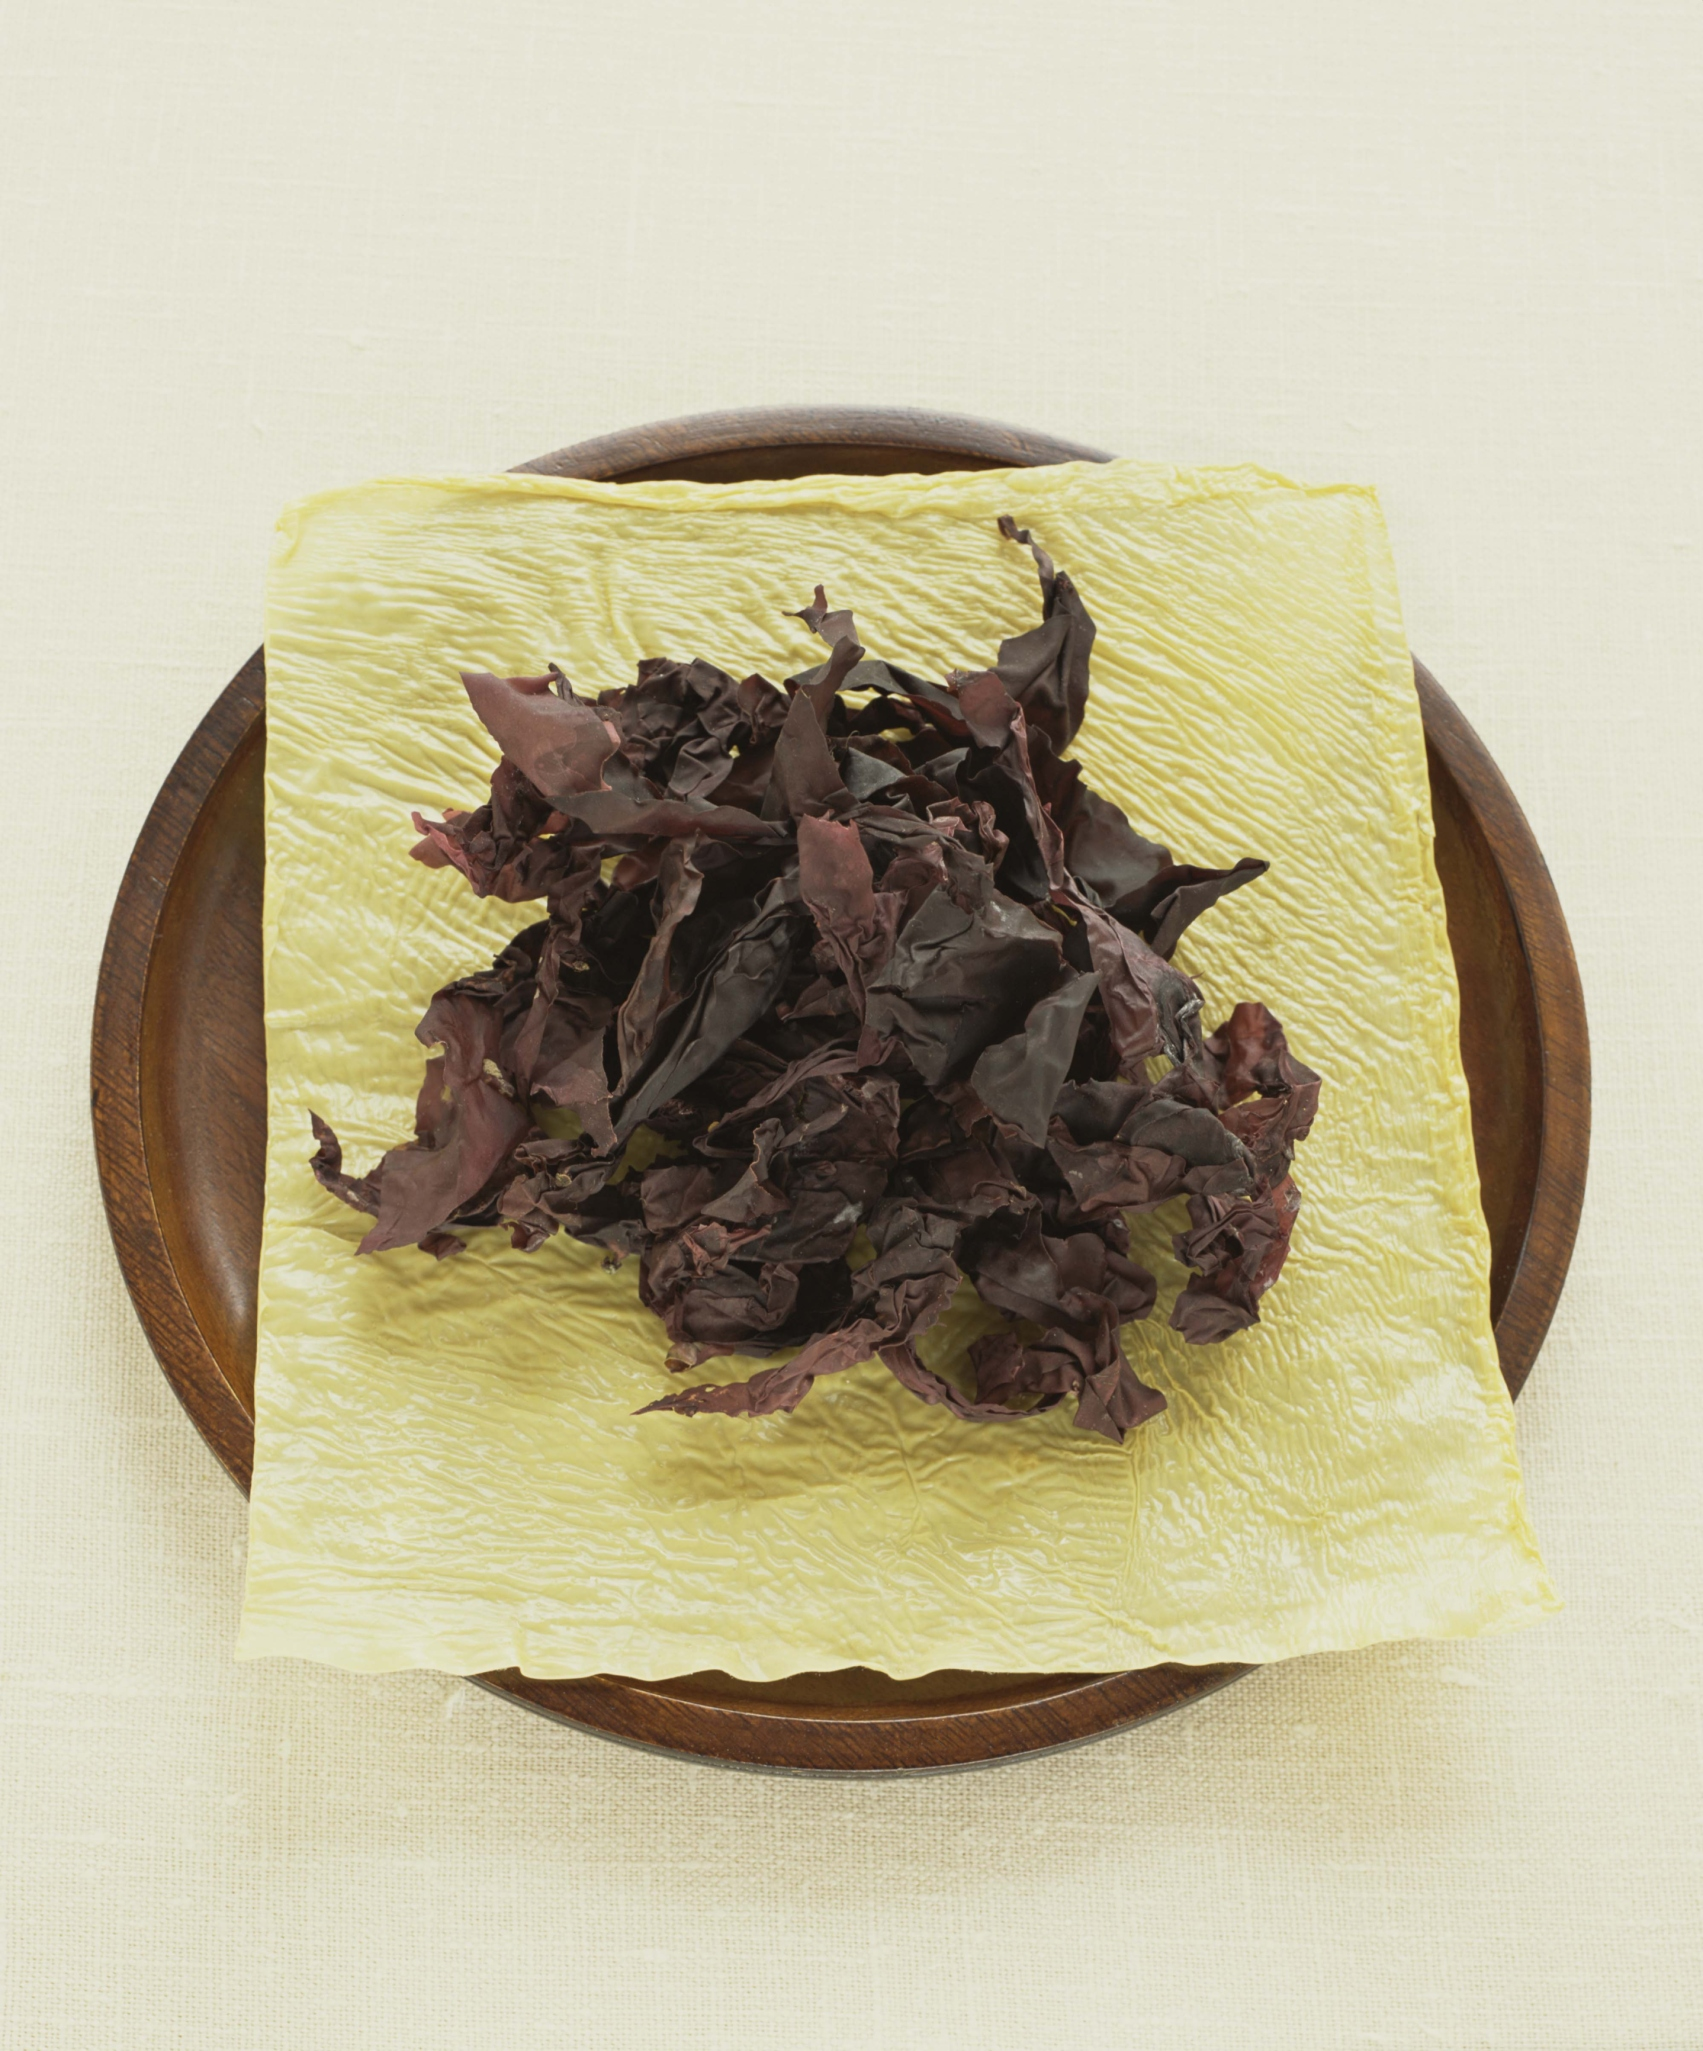 Heat from roasting reduces enzyme levels in seaweed.